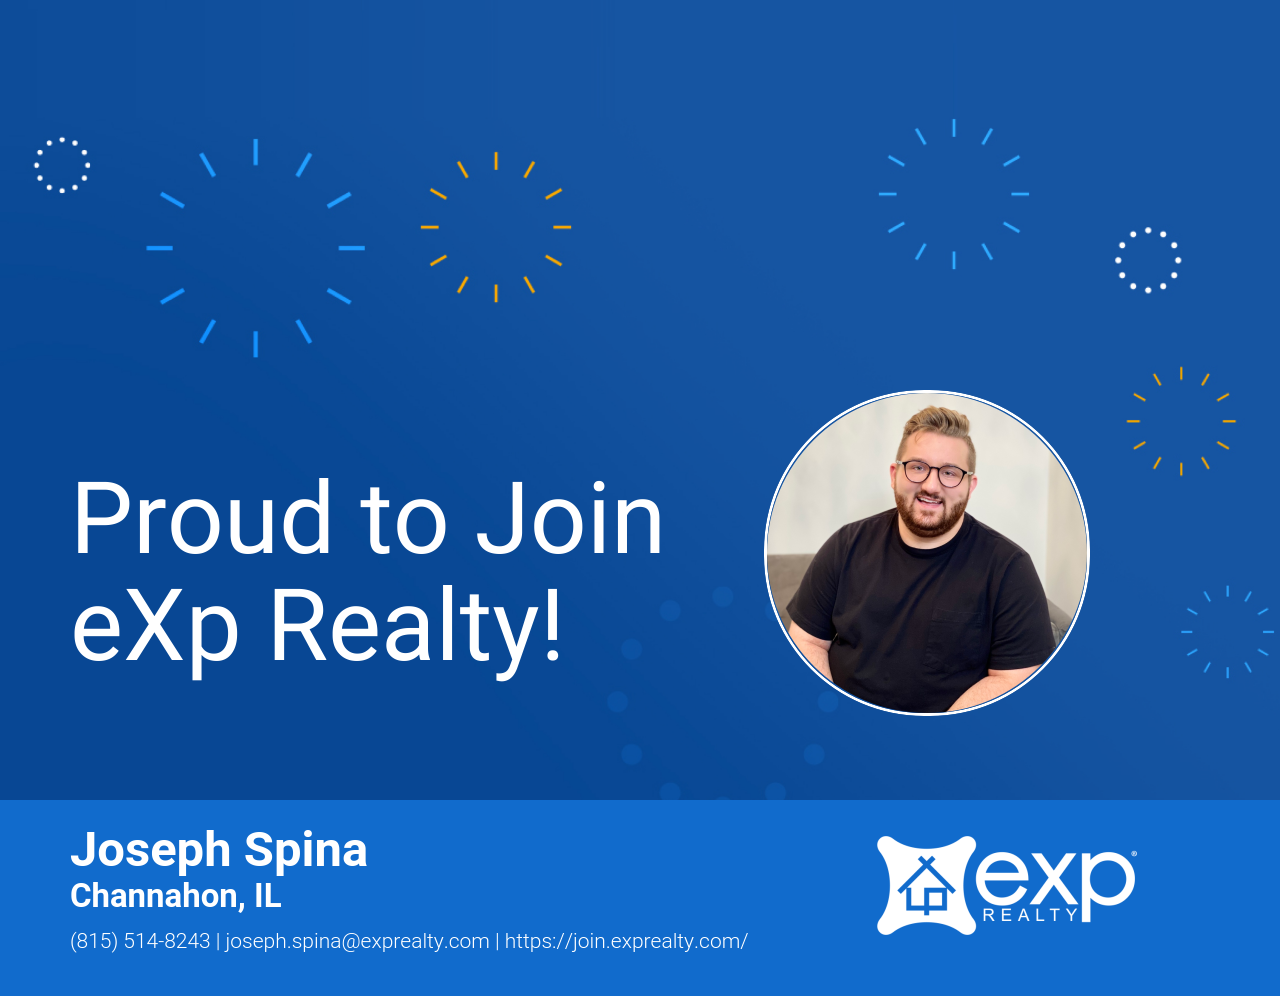 eXp Realty Welcomes Joseph Spina!